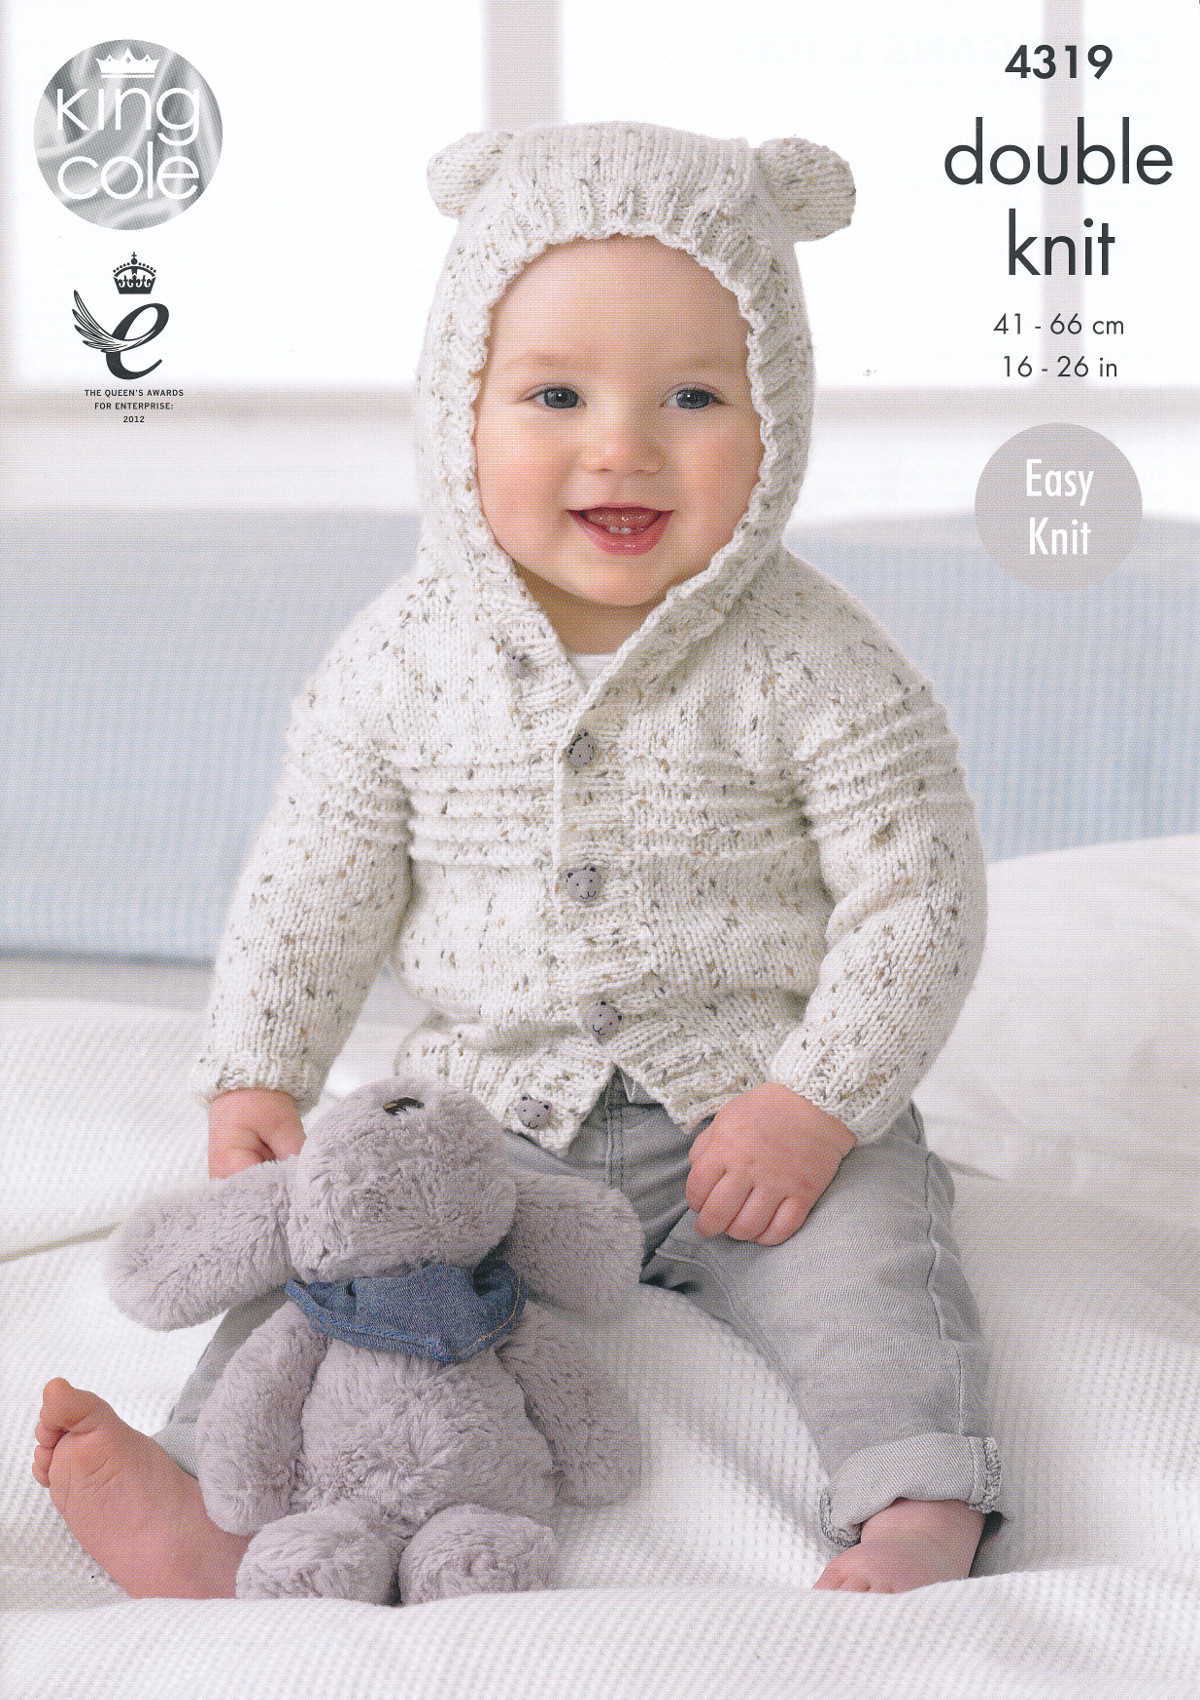 King Cole Double Knitting Pattern Baby Cardigans Hat Easy Knit Smarty DK 4319...